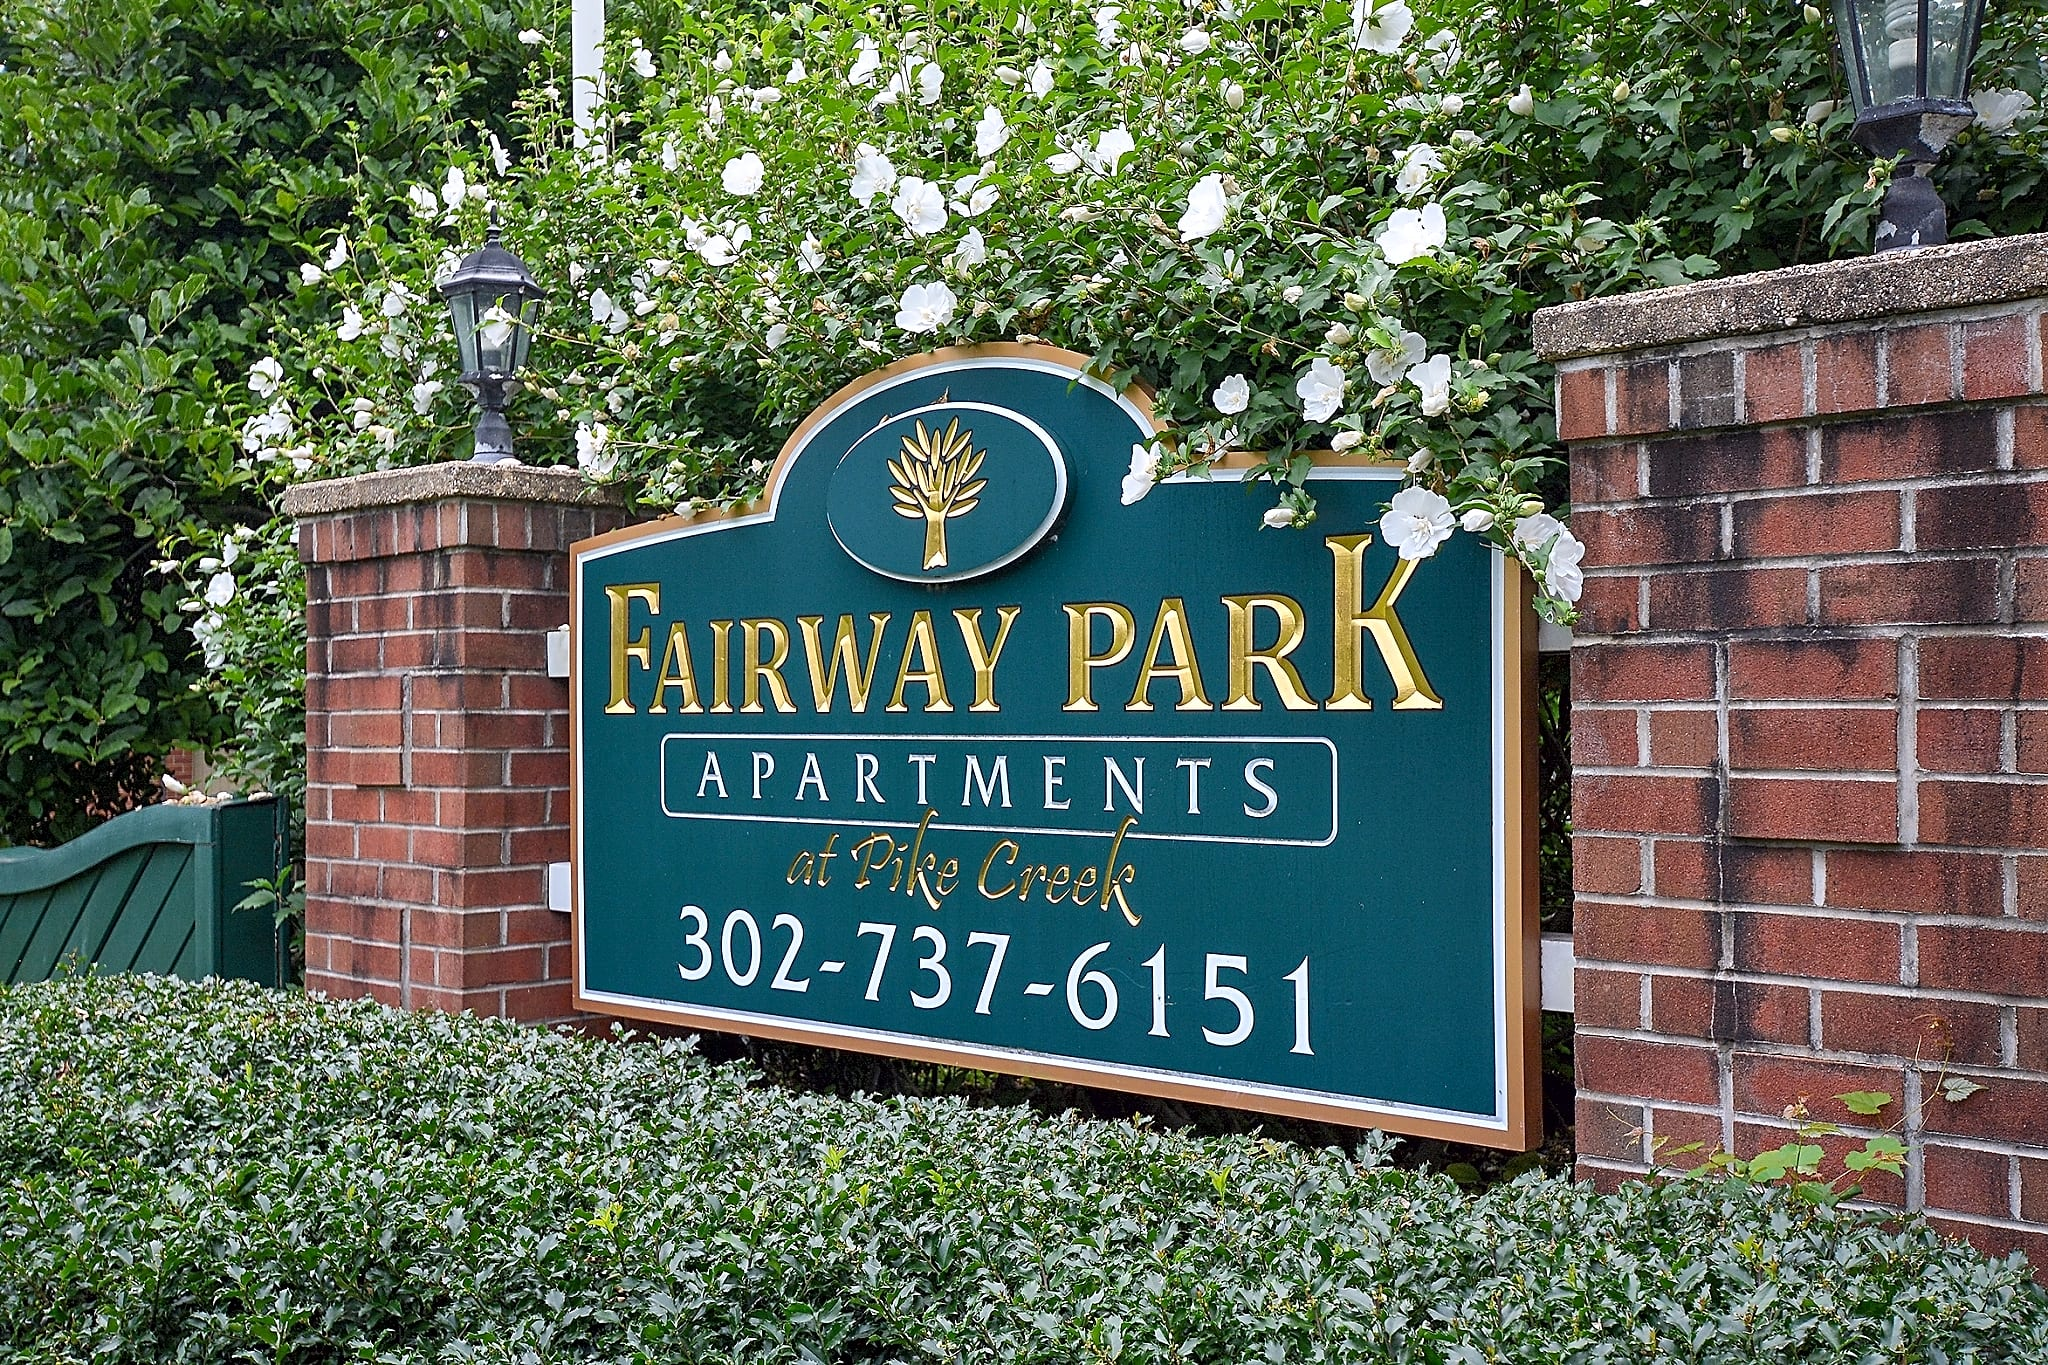 Apartments Near Delaware Fairway Park Apartments for University of Delaware Students in Newark, DE